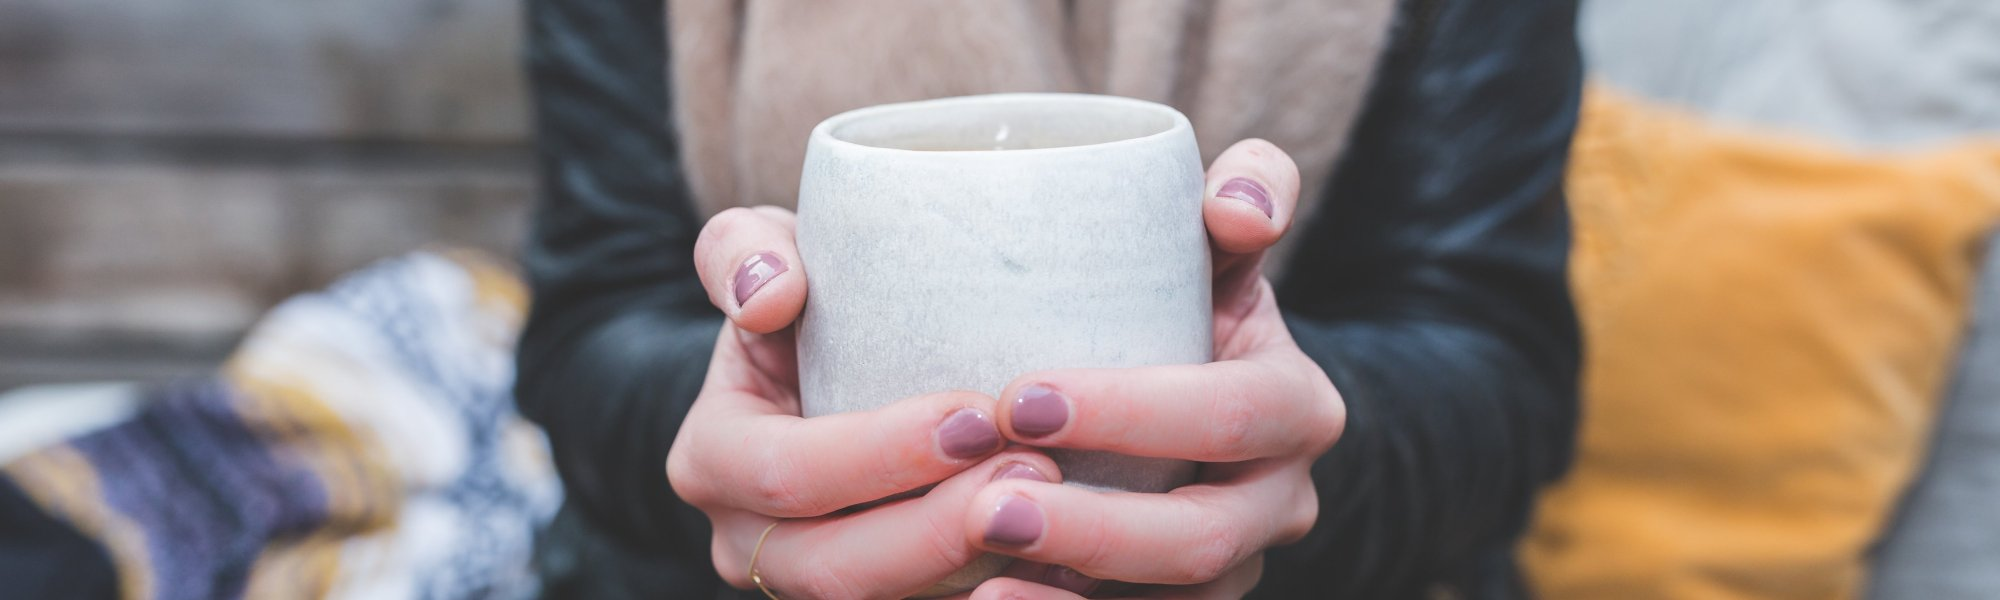 How Self-Care Can Improve Your Life ( + FREE Printable Guide!)